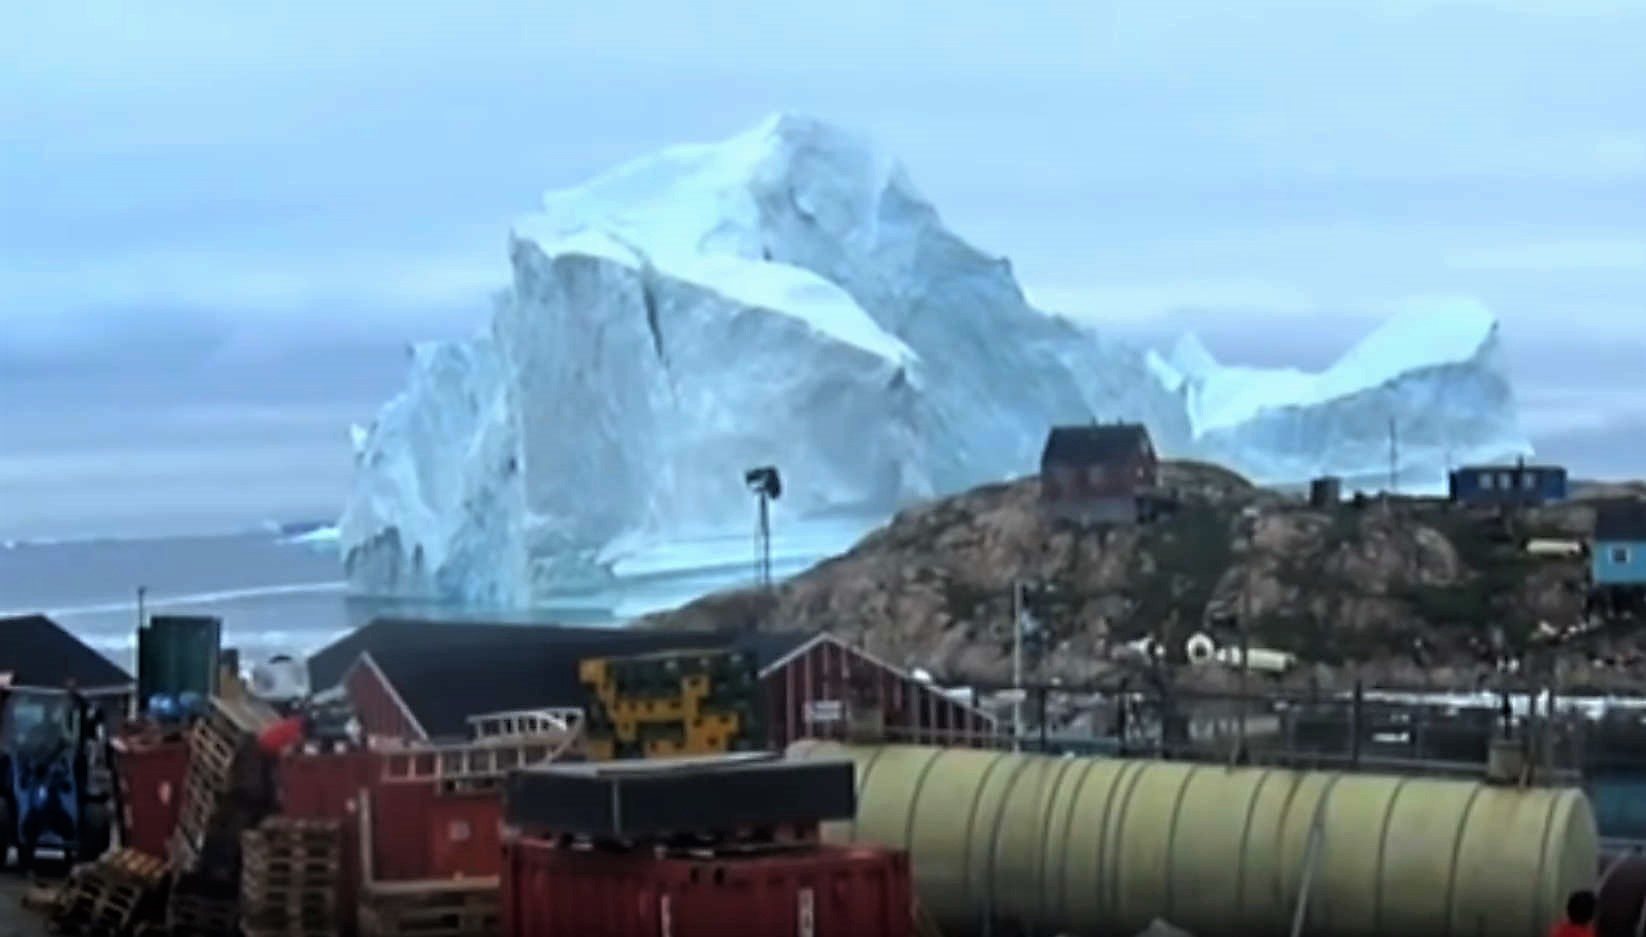 Gigantic Iceberg looms over Greenland village